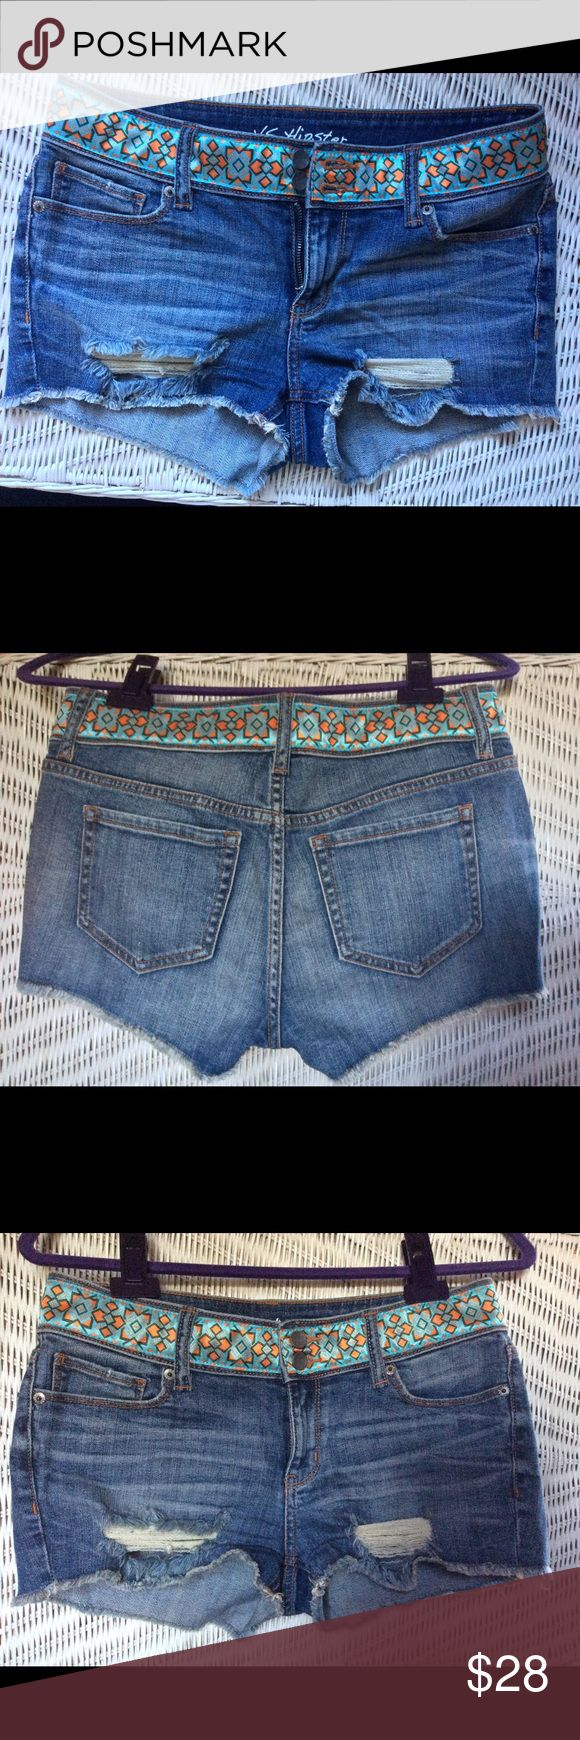 """VS Embellished Hipster Short Shorts Adorable  factory destroyed Jean Cutoff Shorts .  Satiny aqua, orange, and green geometric ribbon embellishment around waist. Size 4. Waist measured flat is 15.5"""", 8.5"""" rise, 2"""" inseam. These are NWOT, never worn.  99% cotton, 1 % elastane. Shorts are soft and have some stretch. Waistband doesn't stretch due to embellishment. Victoria's Secret Shorts Jean Shorts"""